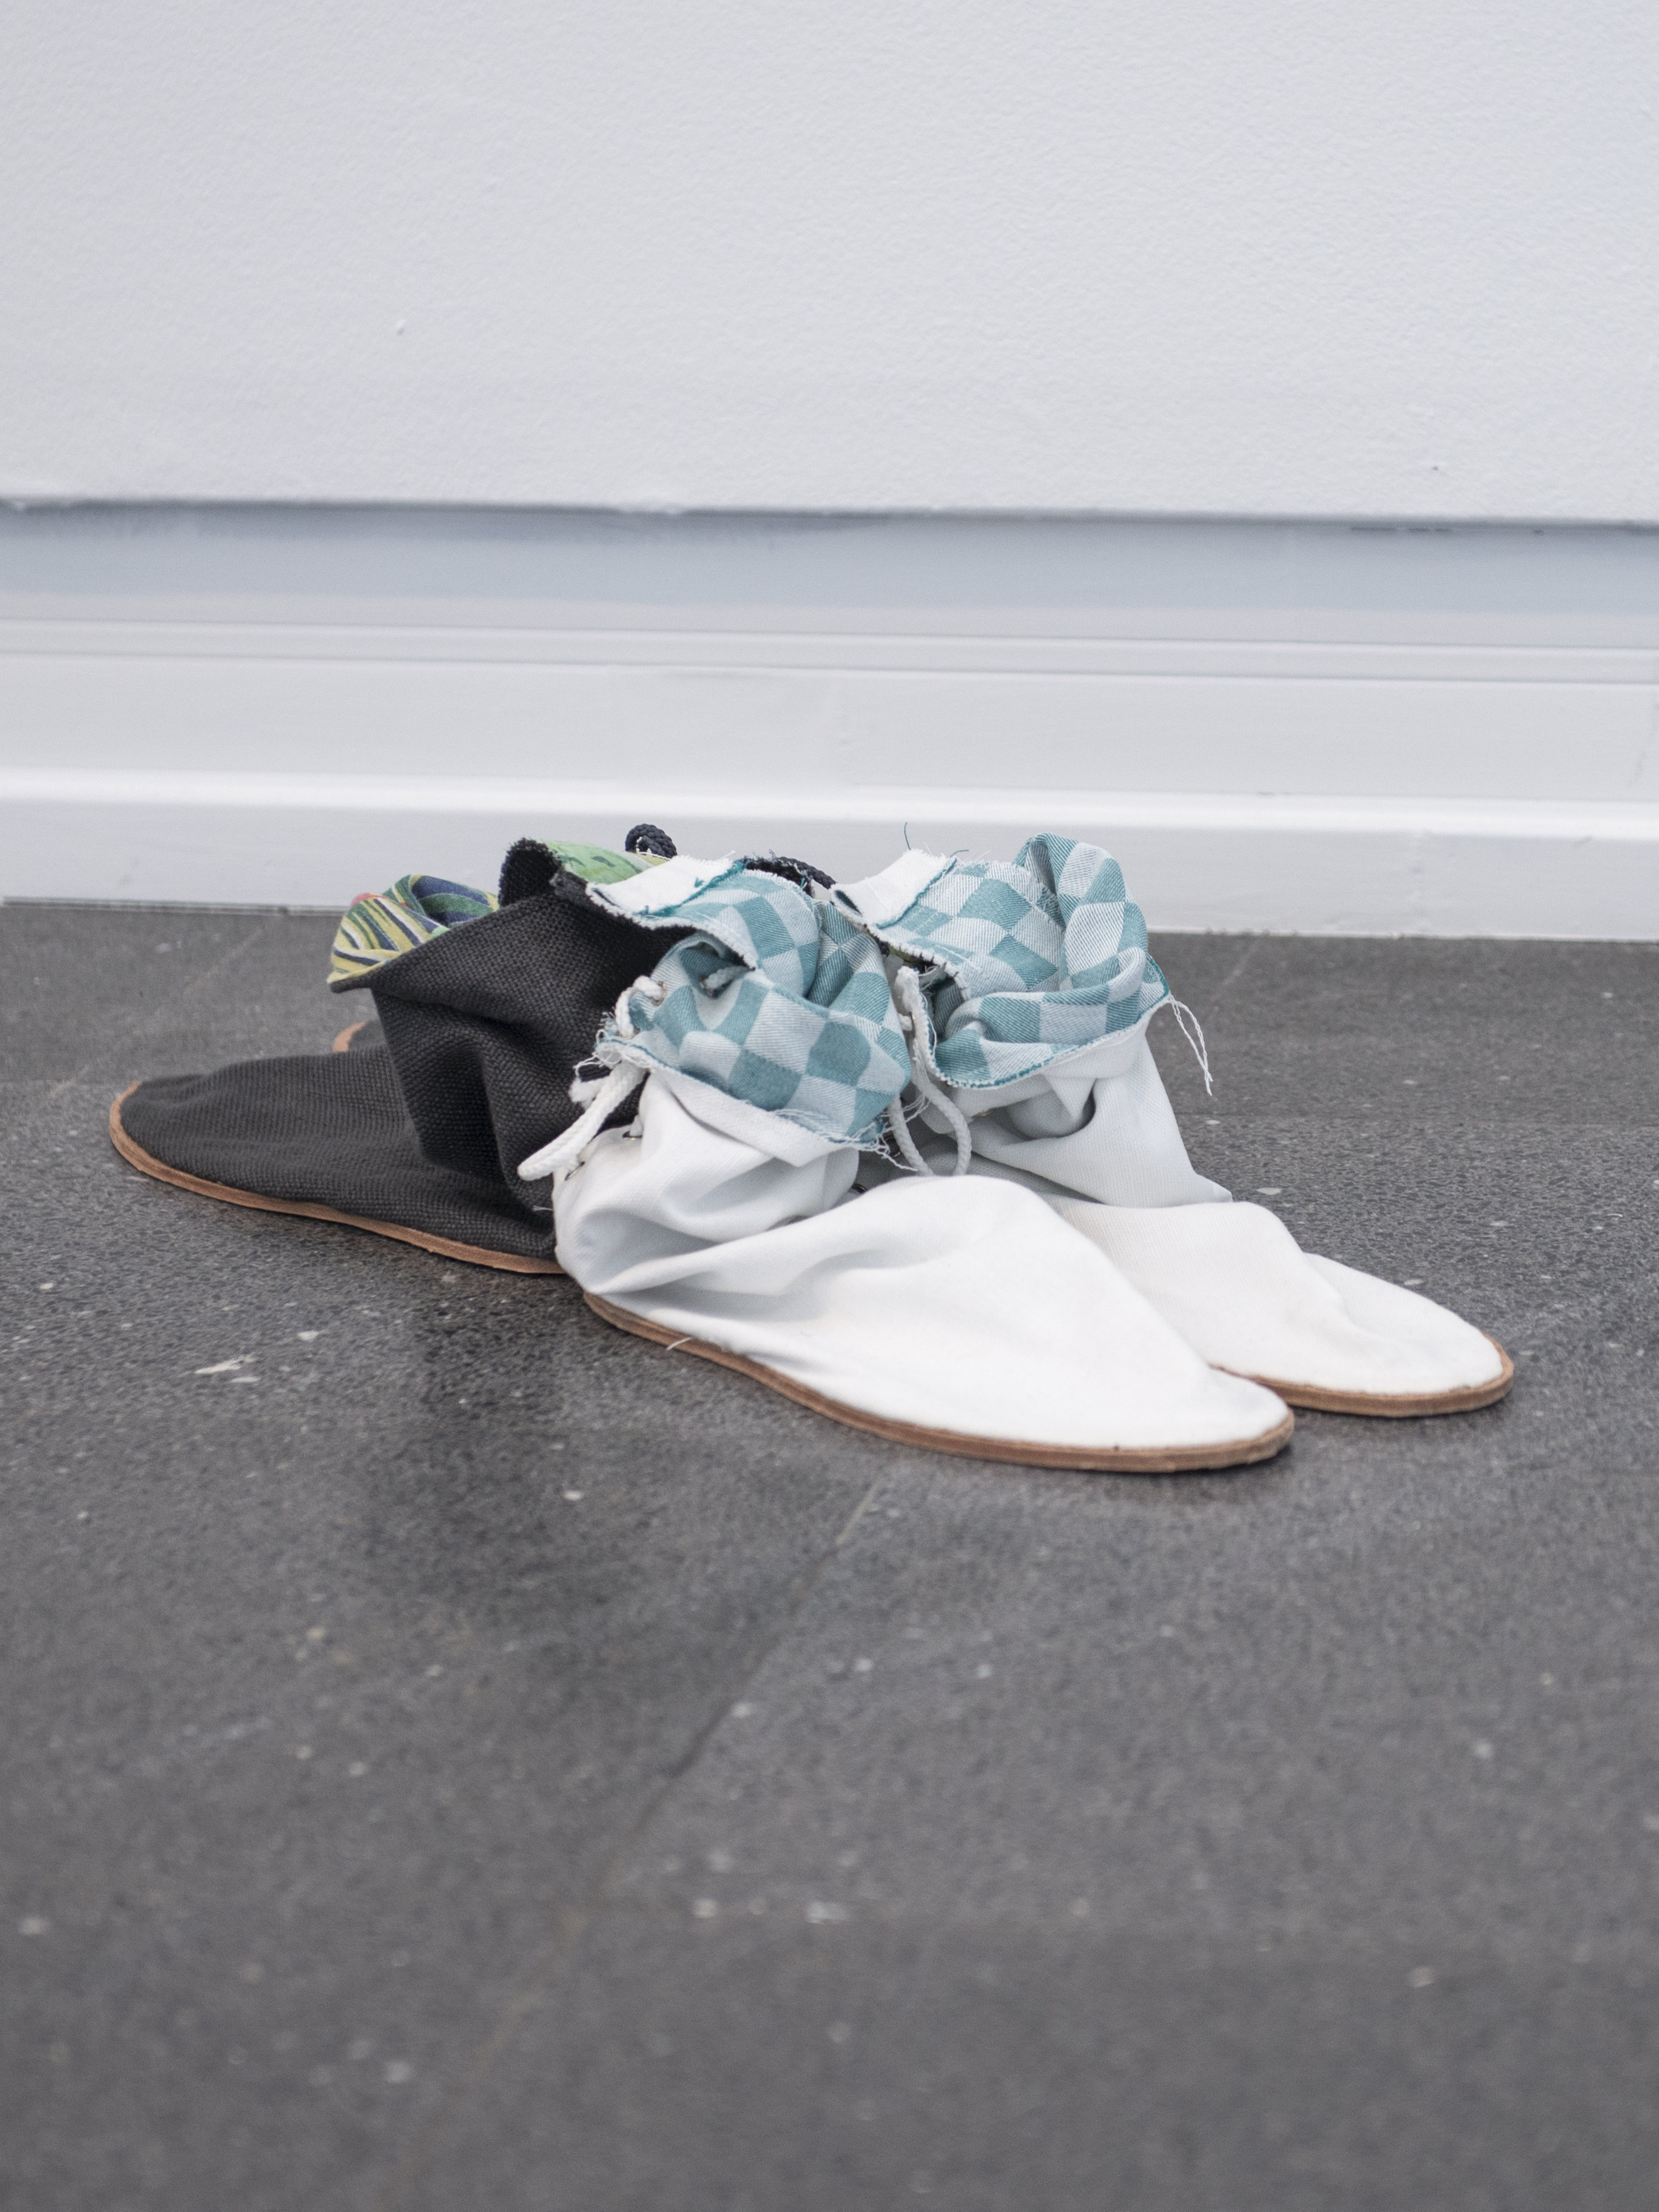 Sewn canvas shoes, 55×22×15